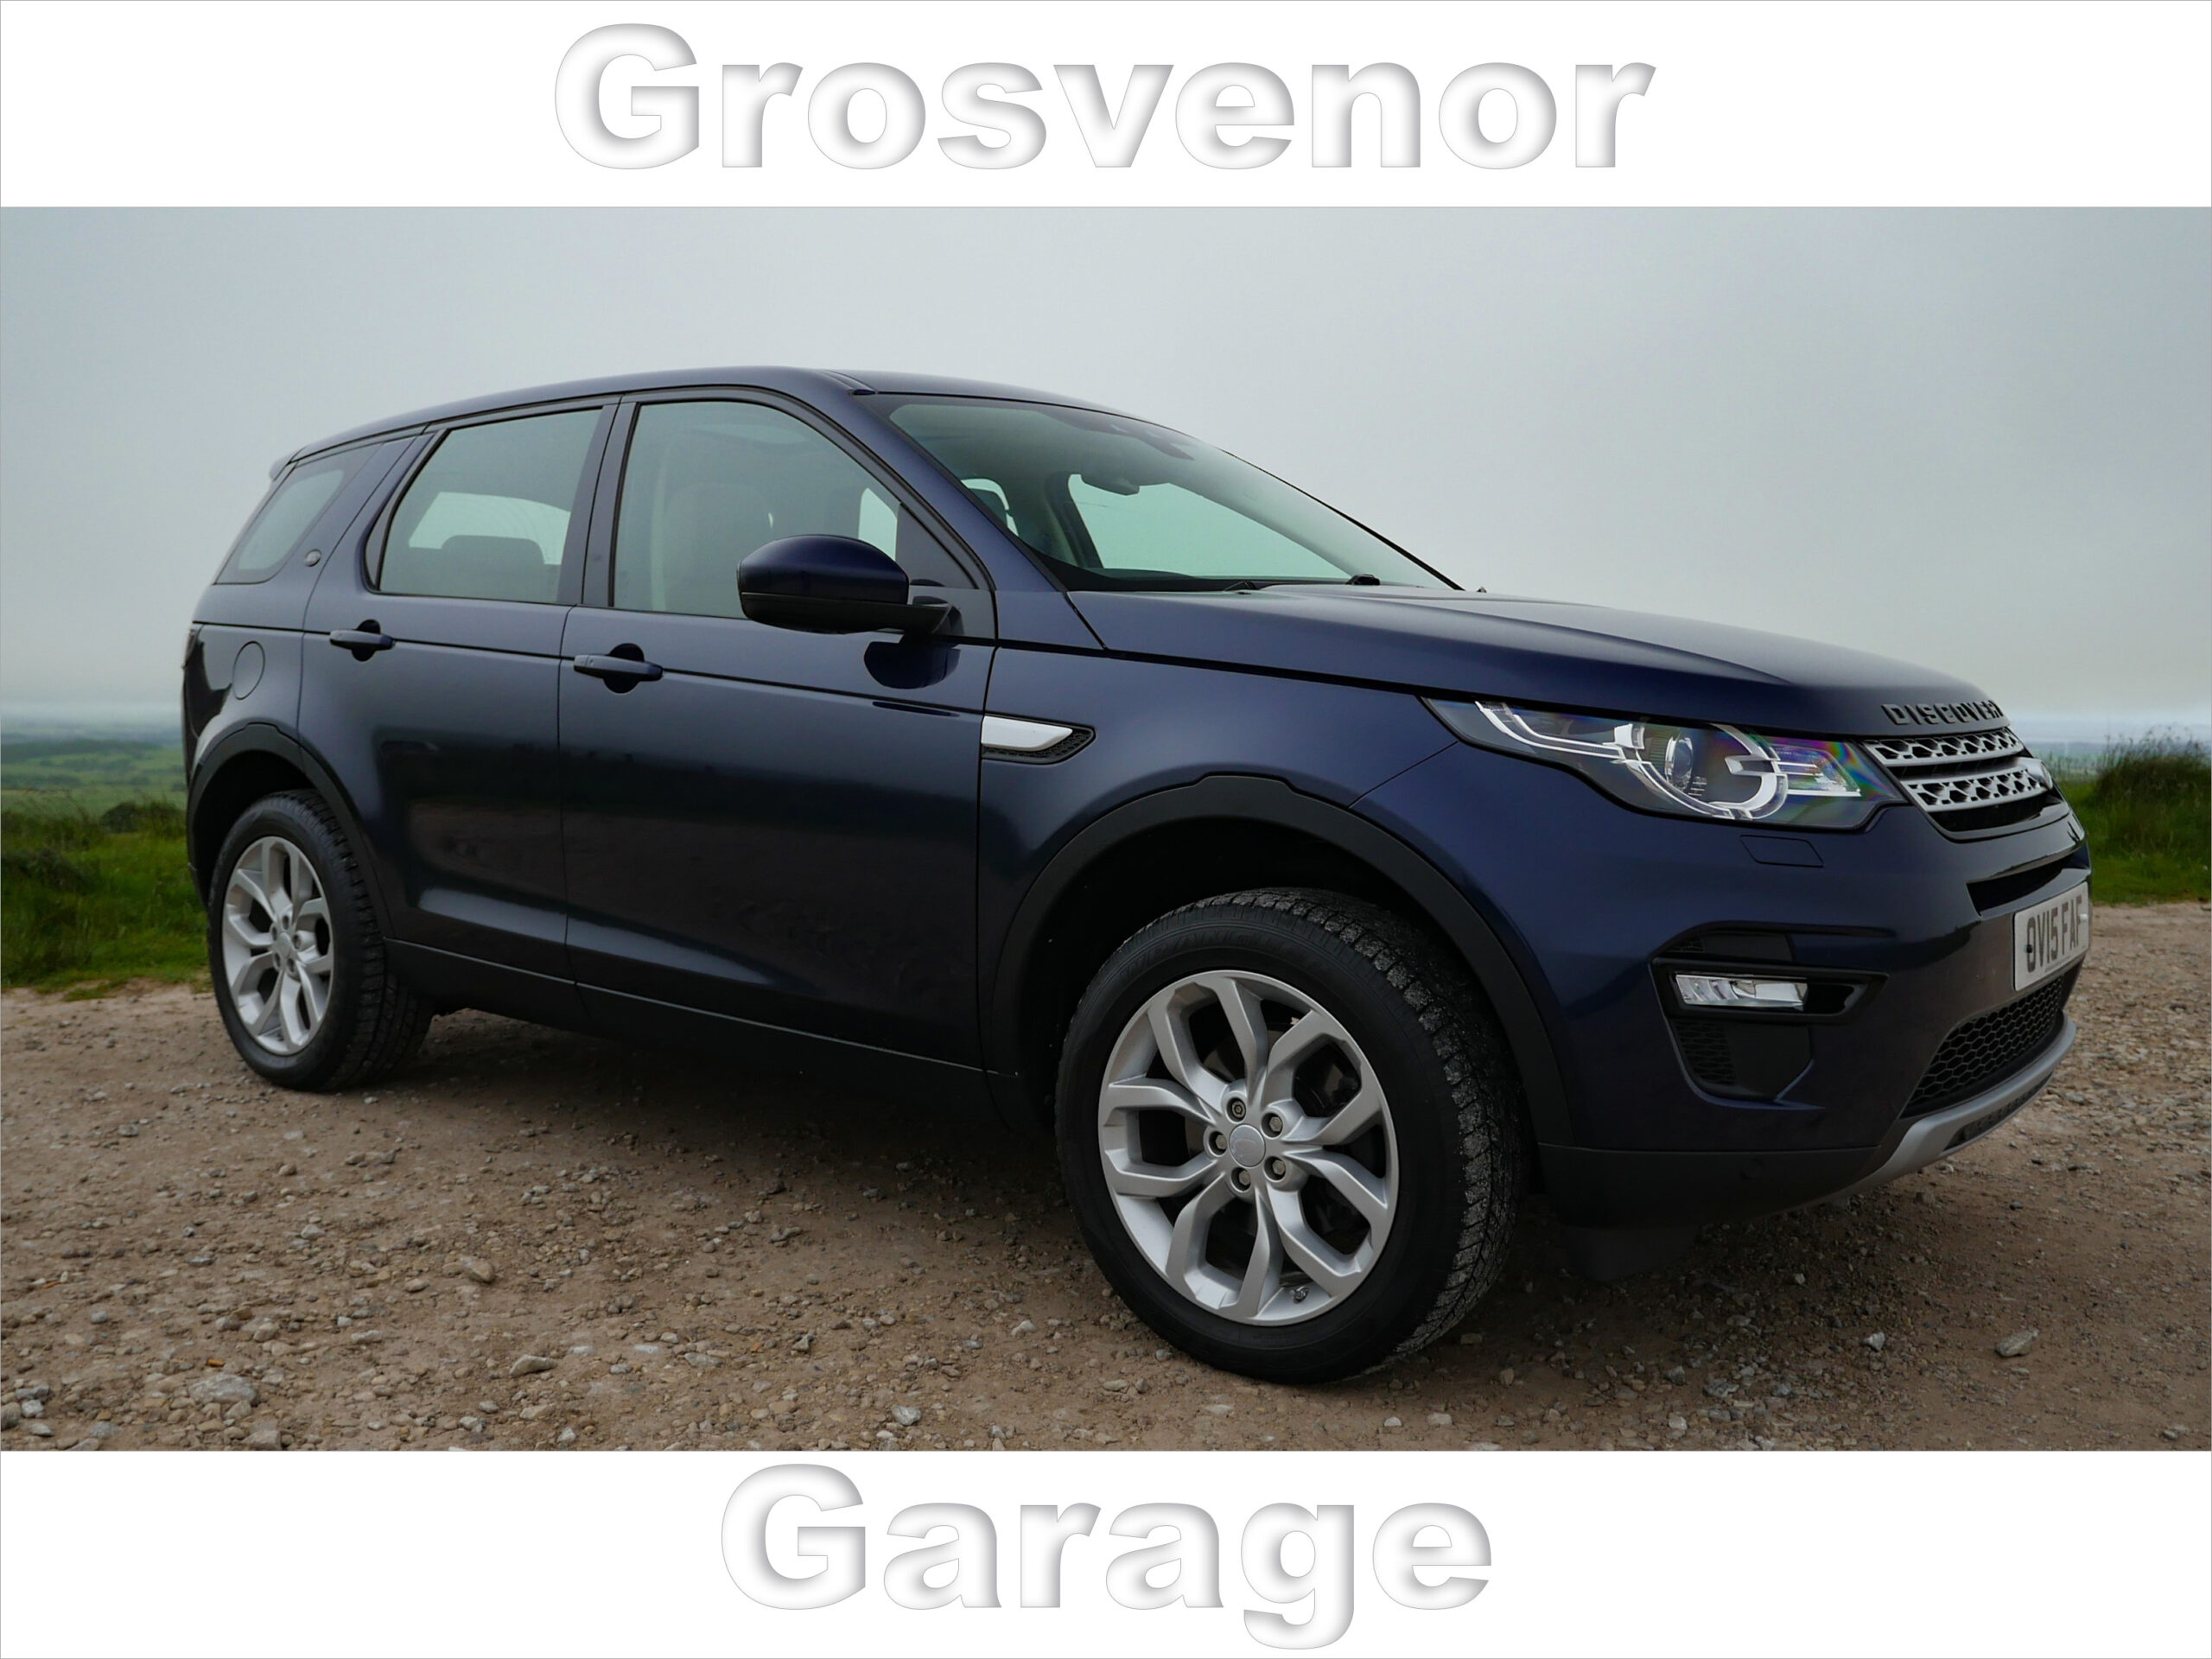 2015 (15) LAND ROVER DISCOVERY SPORT 2.2 SD4 HSE 5DR AUTOMATIC